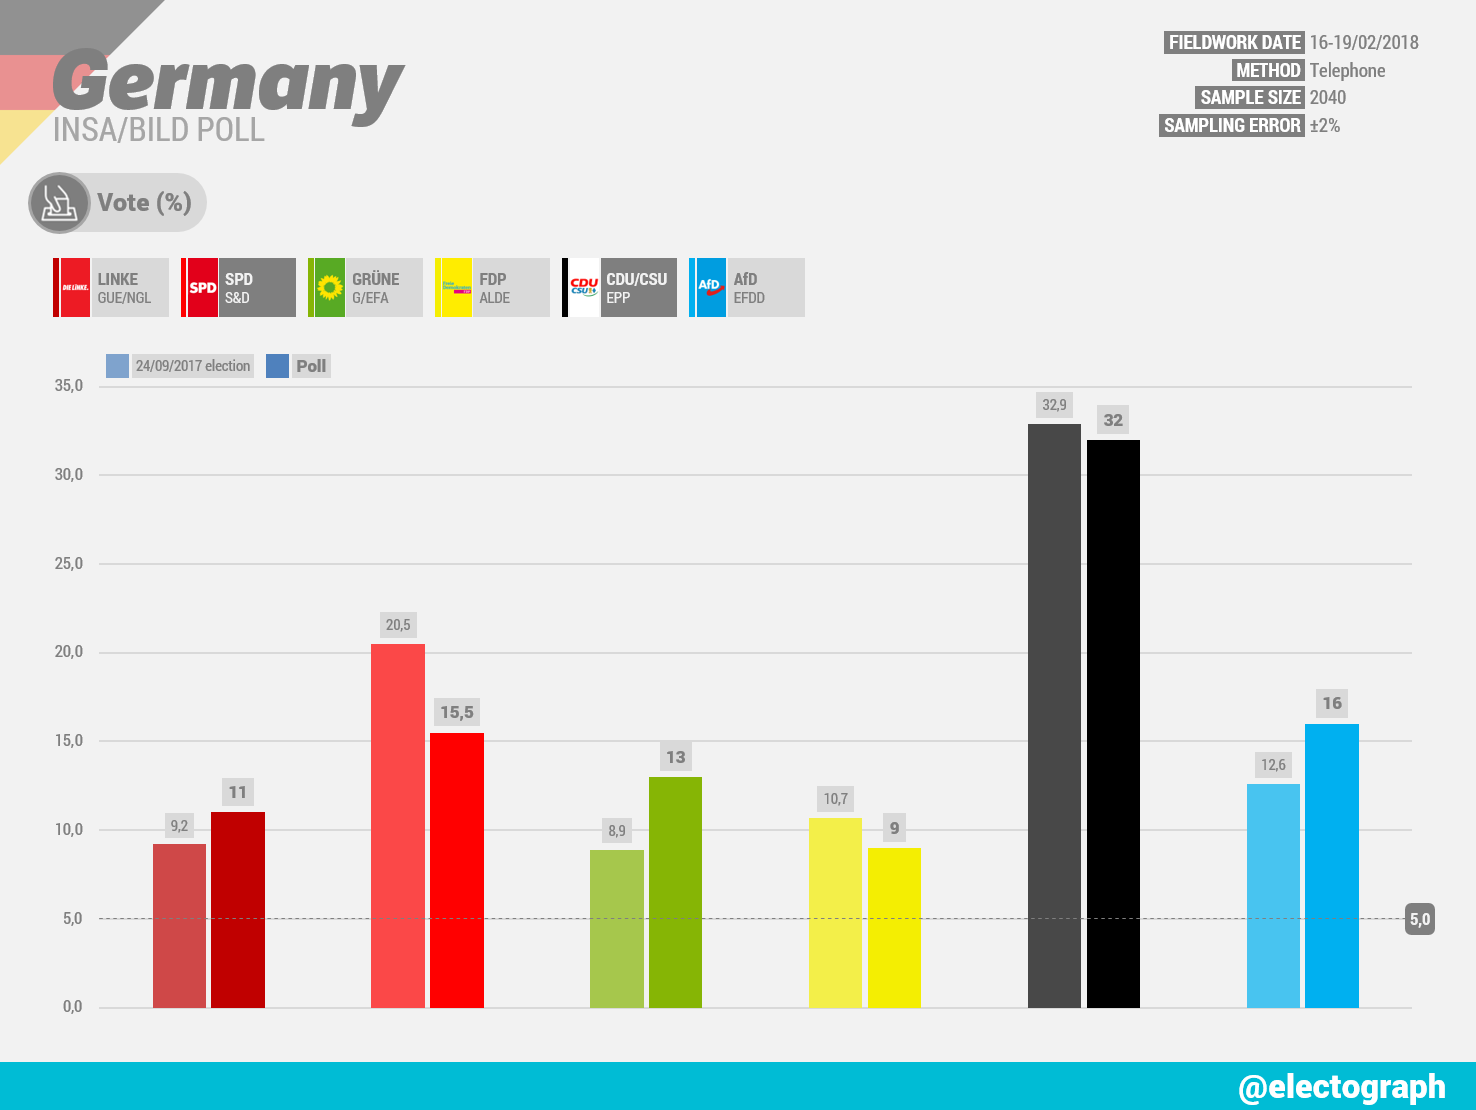 GERMANY INSA poll chart for Bild, February 2018